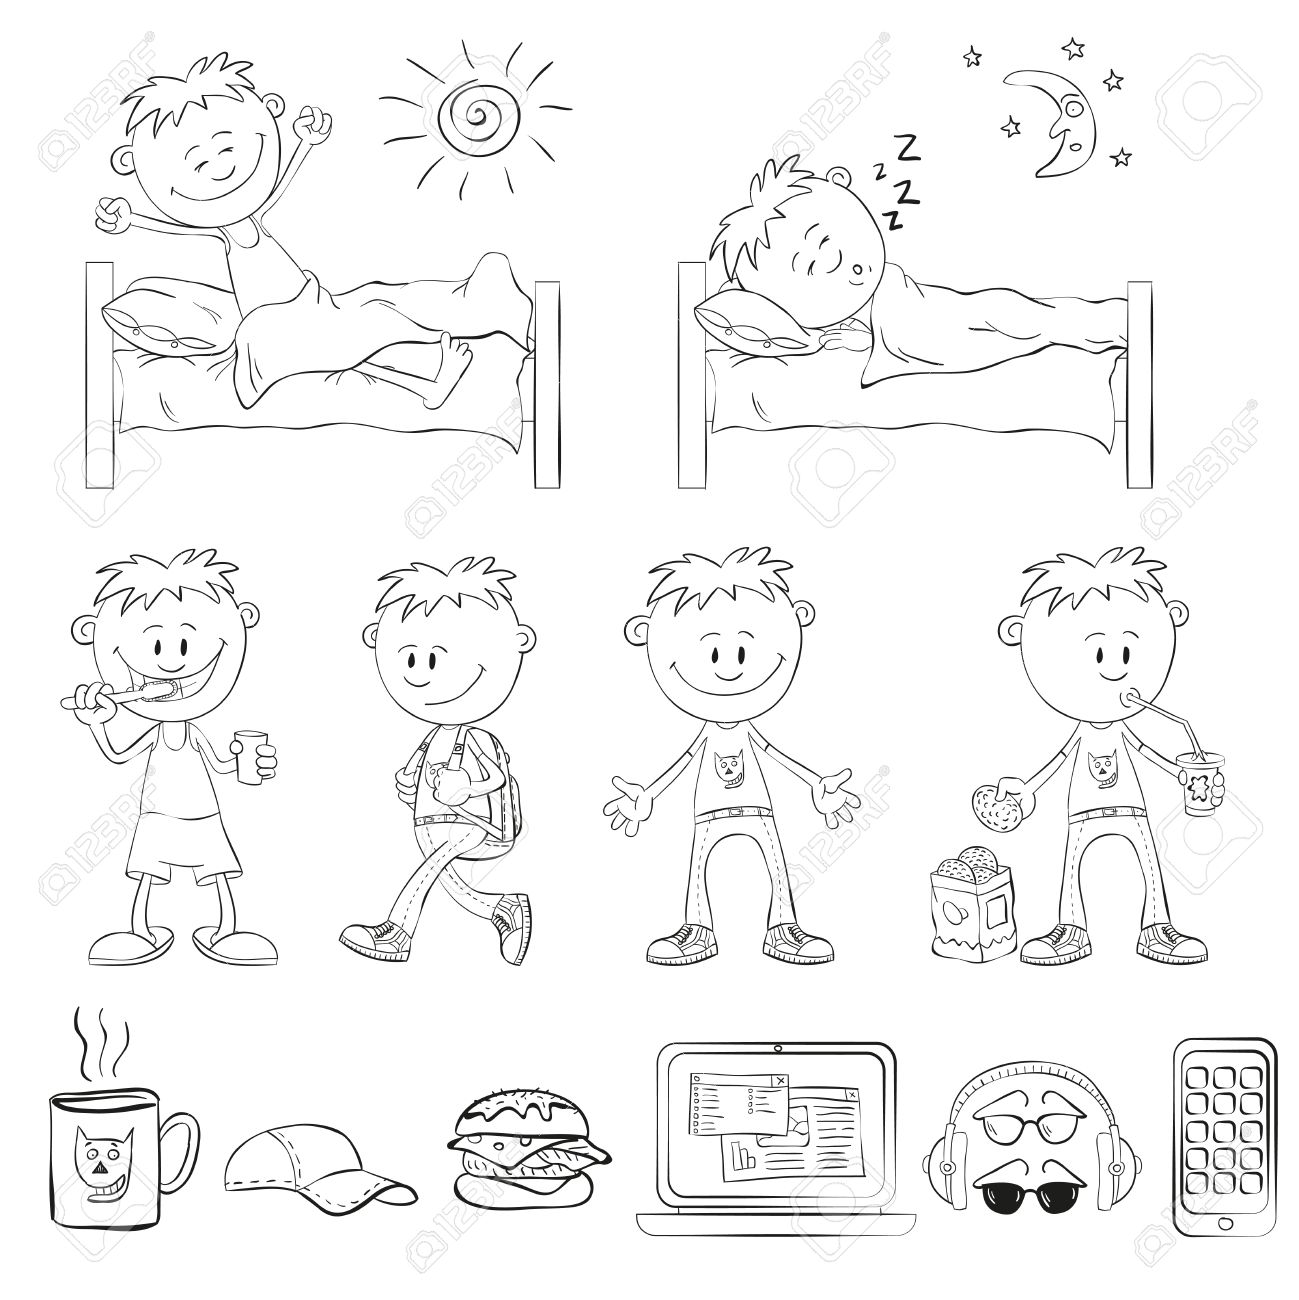 1299x1300 Boy Draw The Outline Of A Sketch Style. The Boy Wakes Up, Sleeping